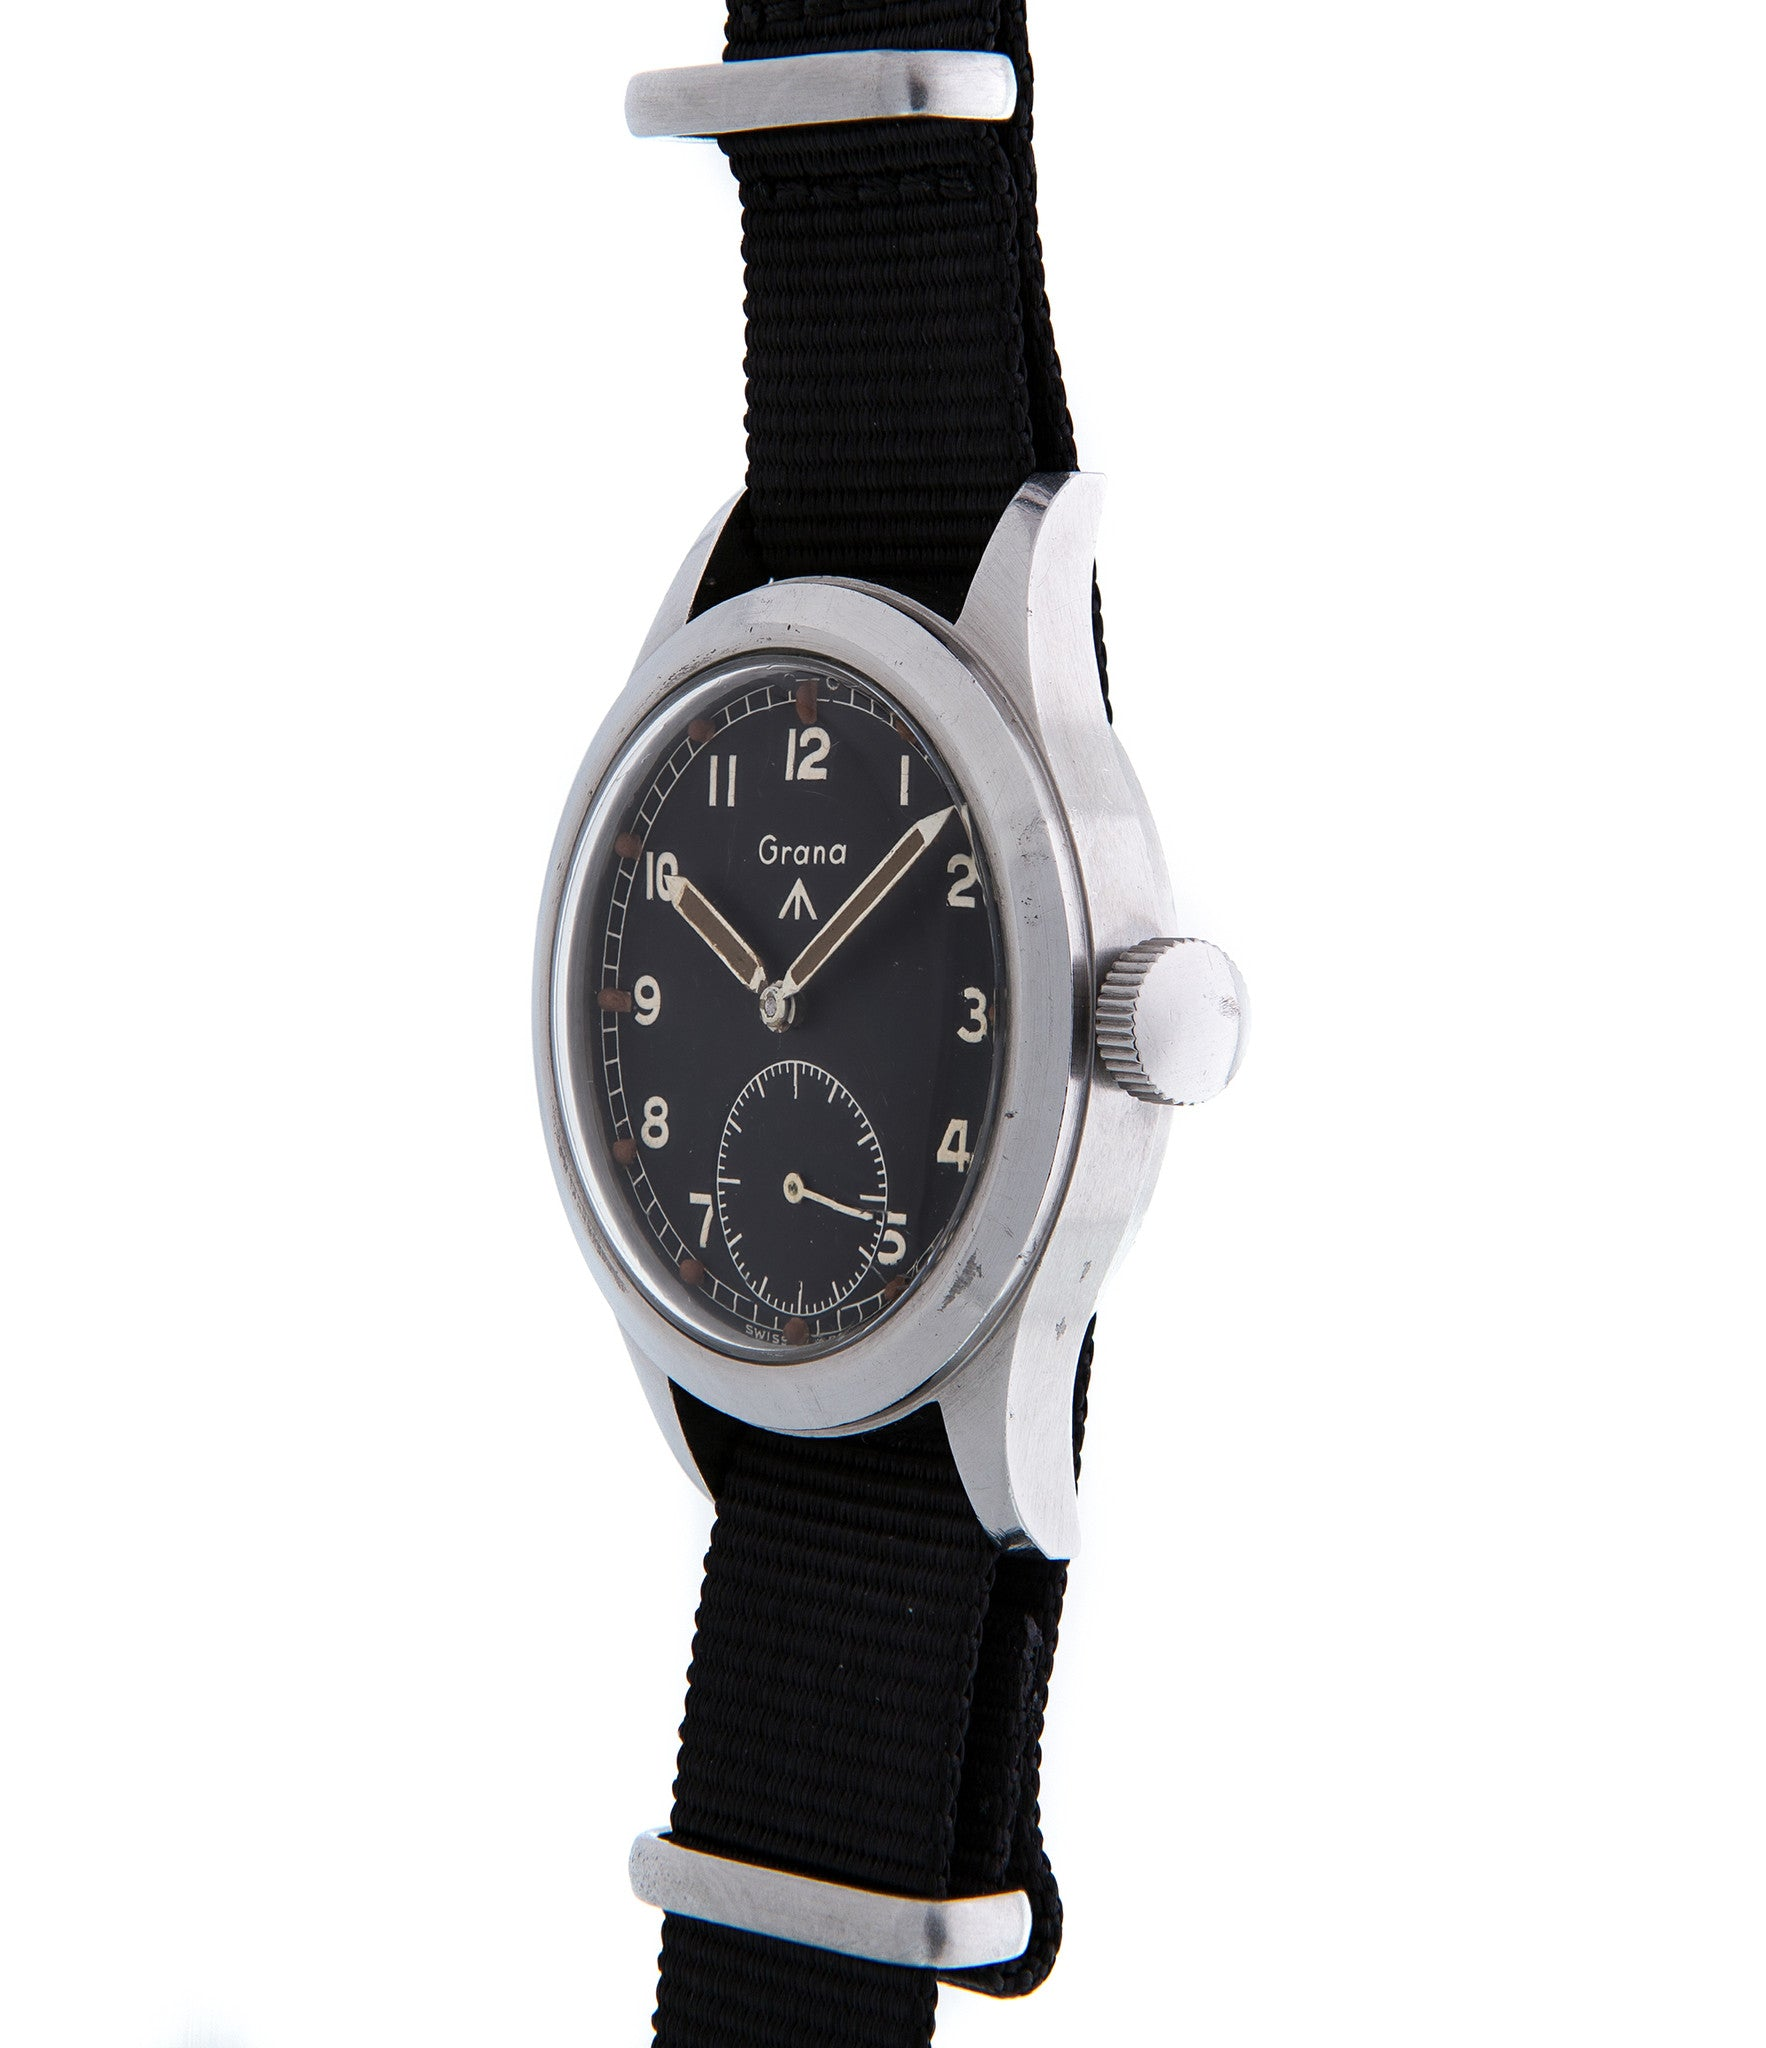 buy Grana W.W.W. rare British military vintage watch online in steel with original black dial and authenticity guaranteed from WATCH XCHANGE